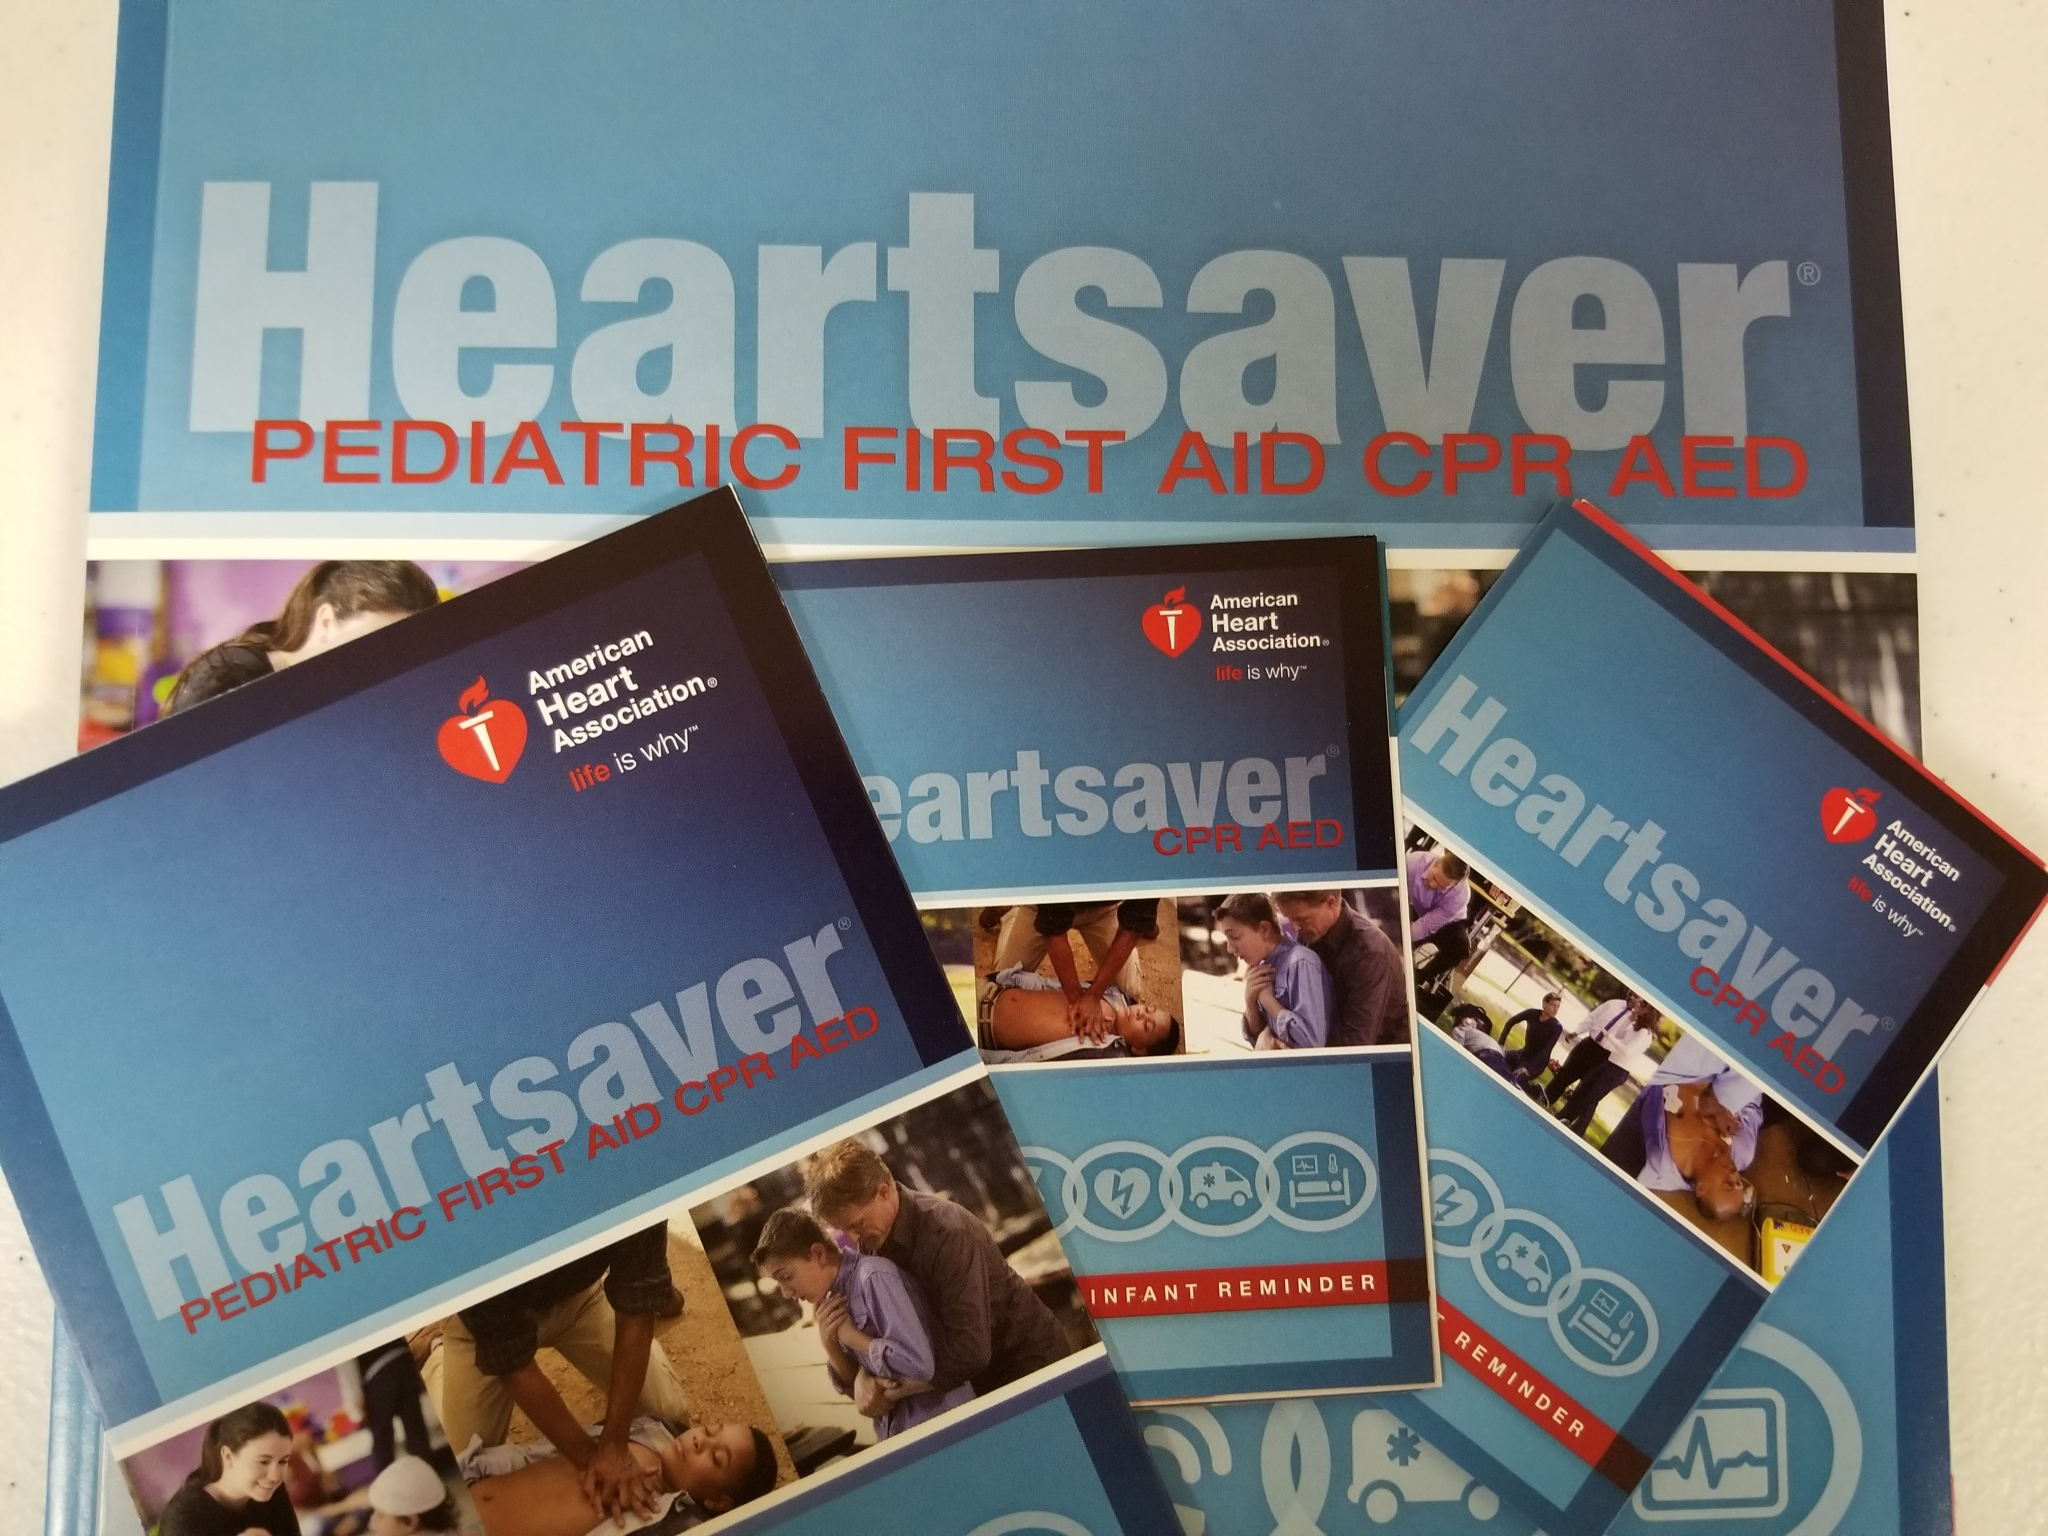 AHA Heartsaver Pediatric First Aid CPR AED Online Classes